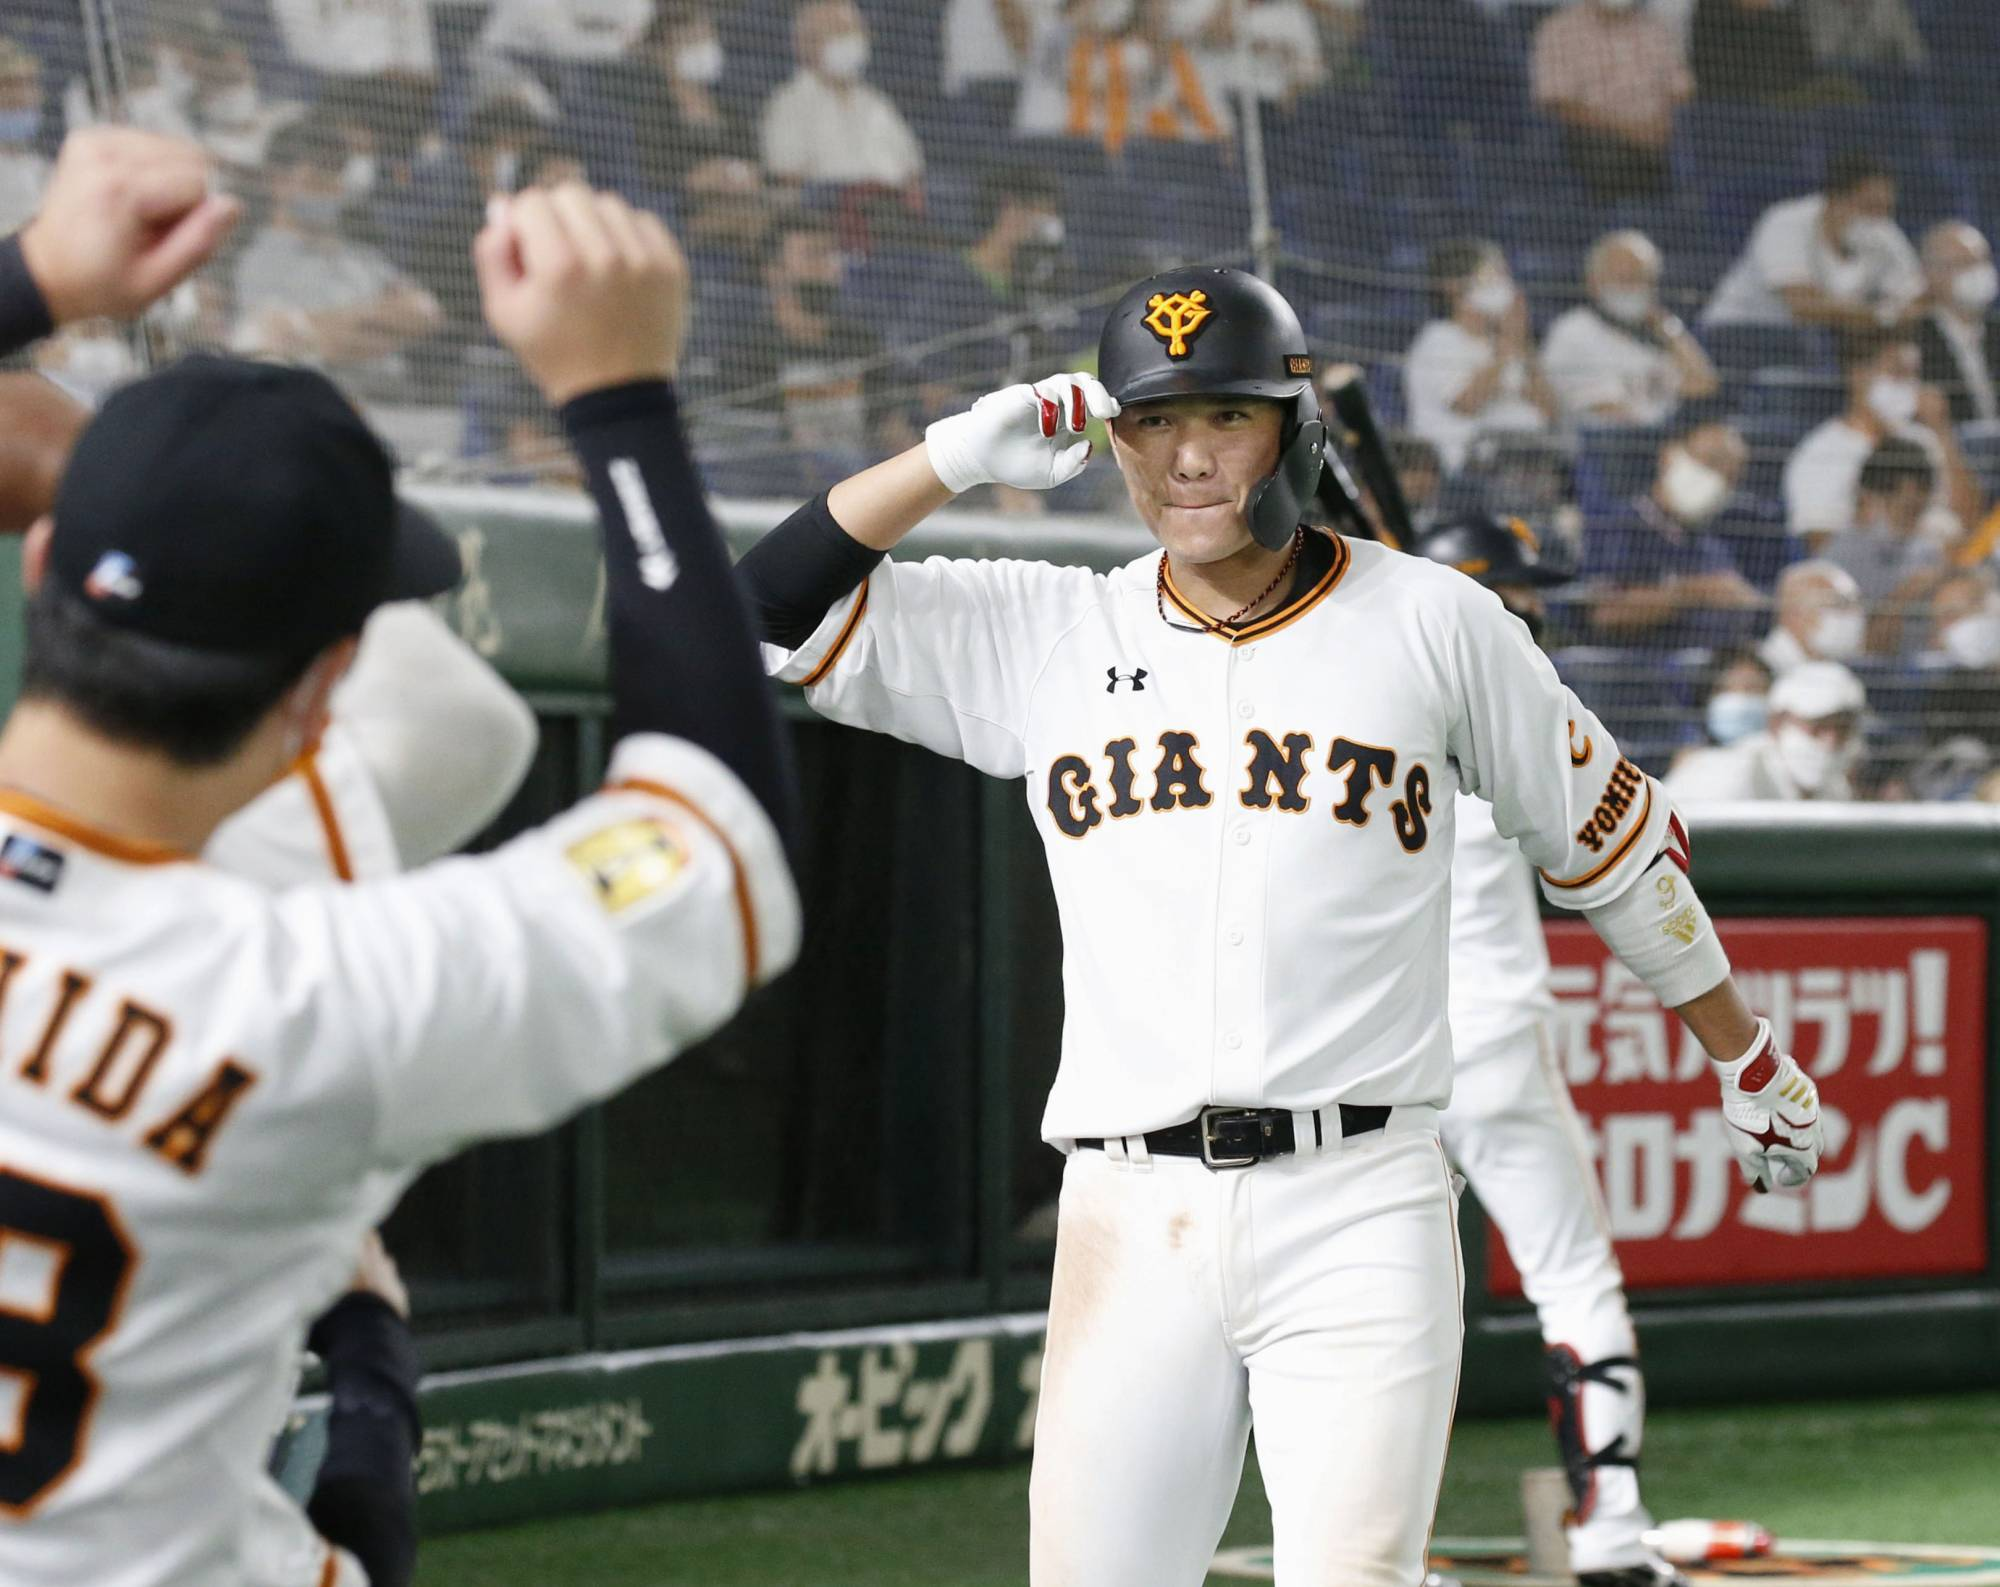 The Giants' Hayato Sakamoto celebrates after his home run against the Swallows in the eighth inning Friday. | KYODO